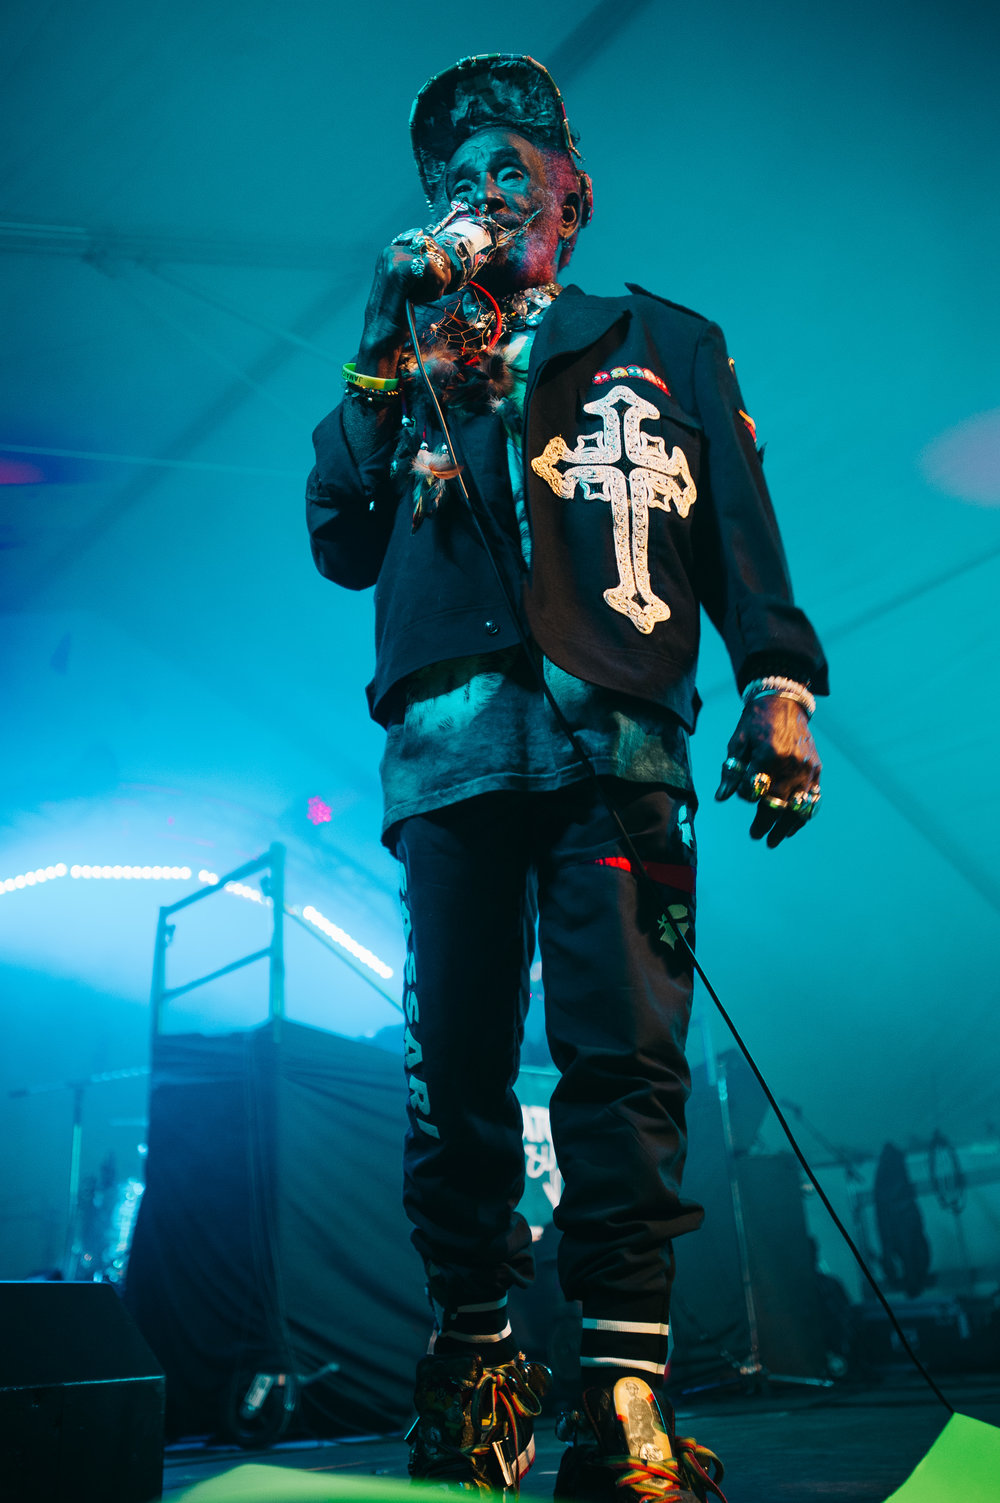 3_Lee_Scratch_Perry_Rifflandia-Timothy_Nguyen-20160916 (8 of 10).jpg